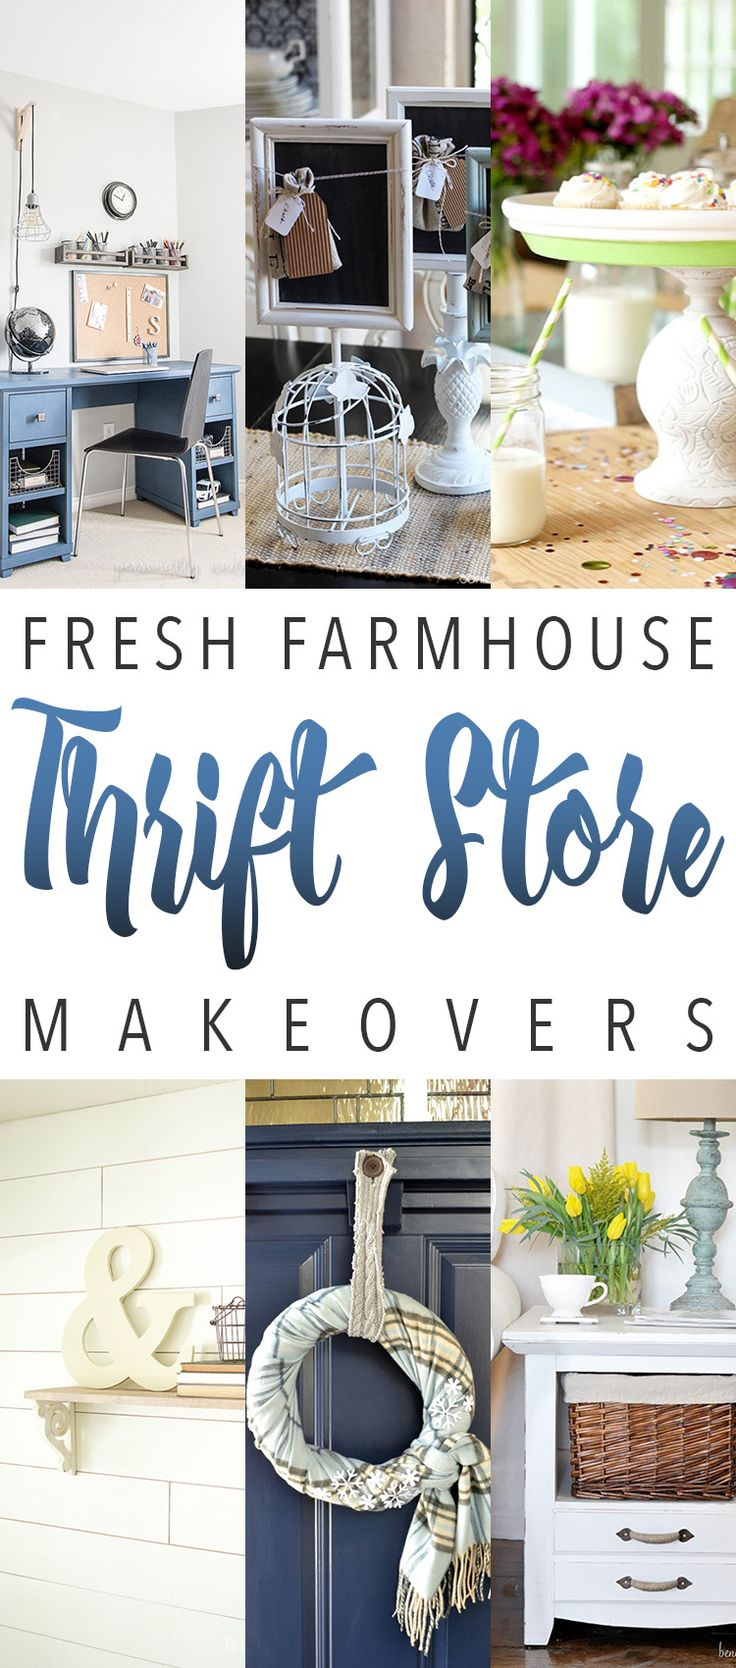 Fresh Farmhouse Thrift Store Makeovers that will make you want to get in your car and visit your Local Thrift Store TODAY!